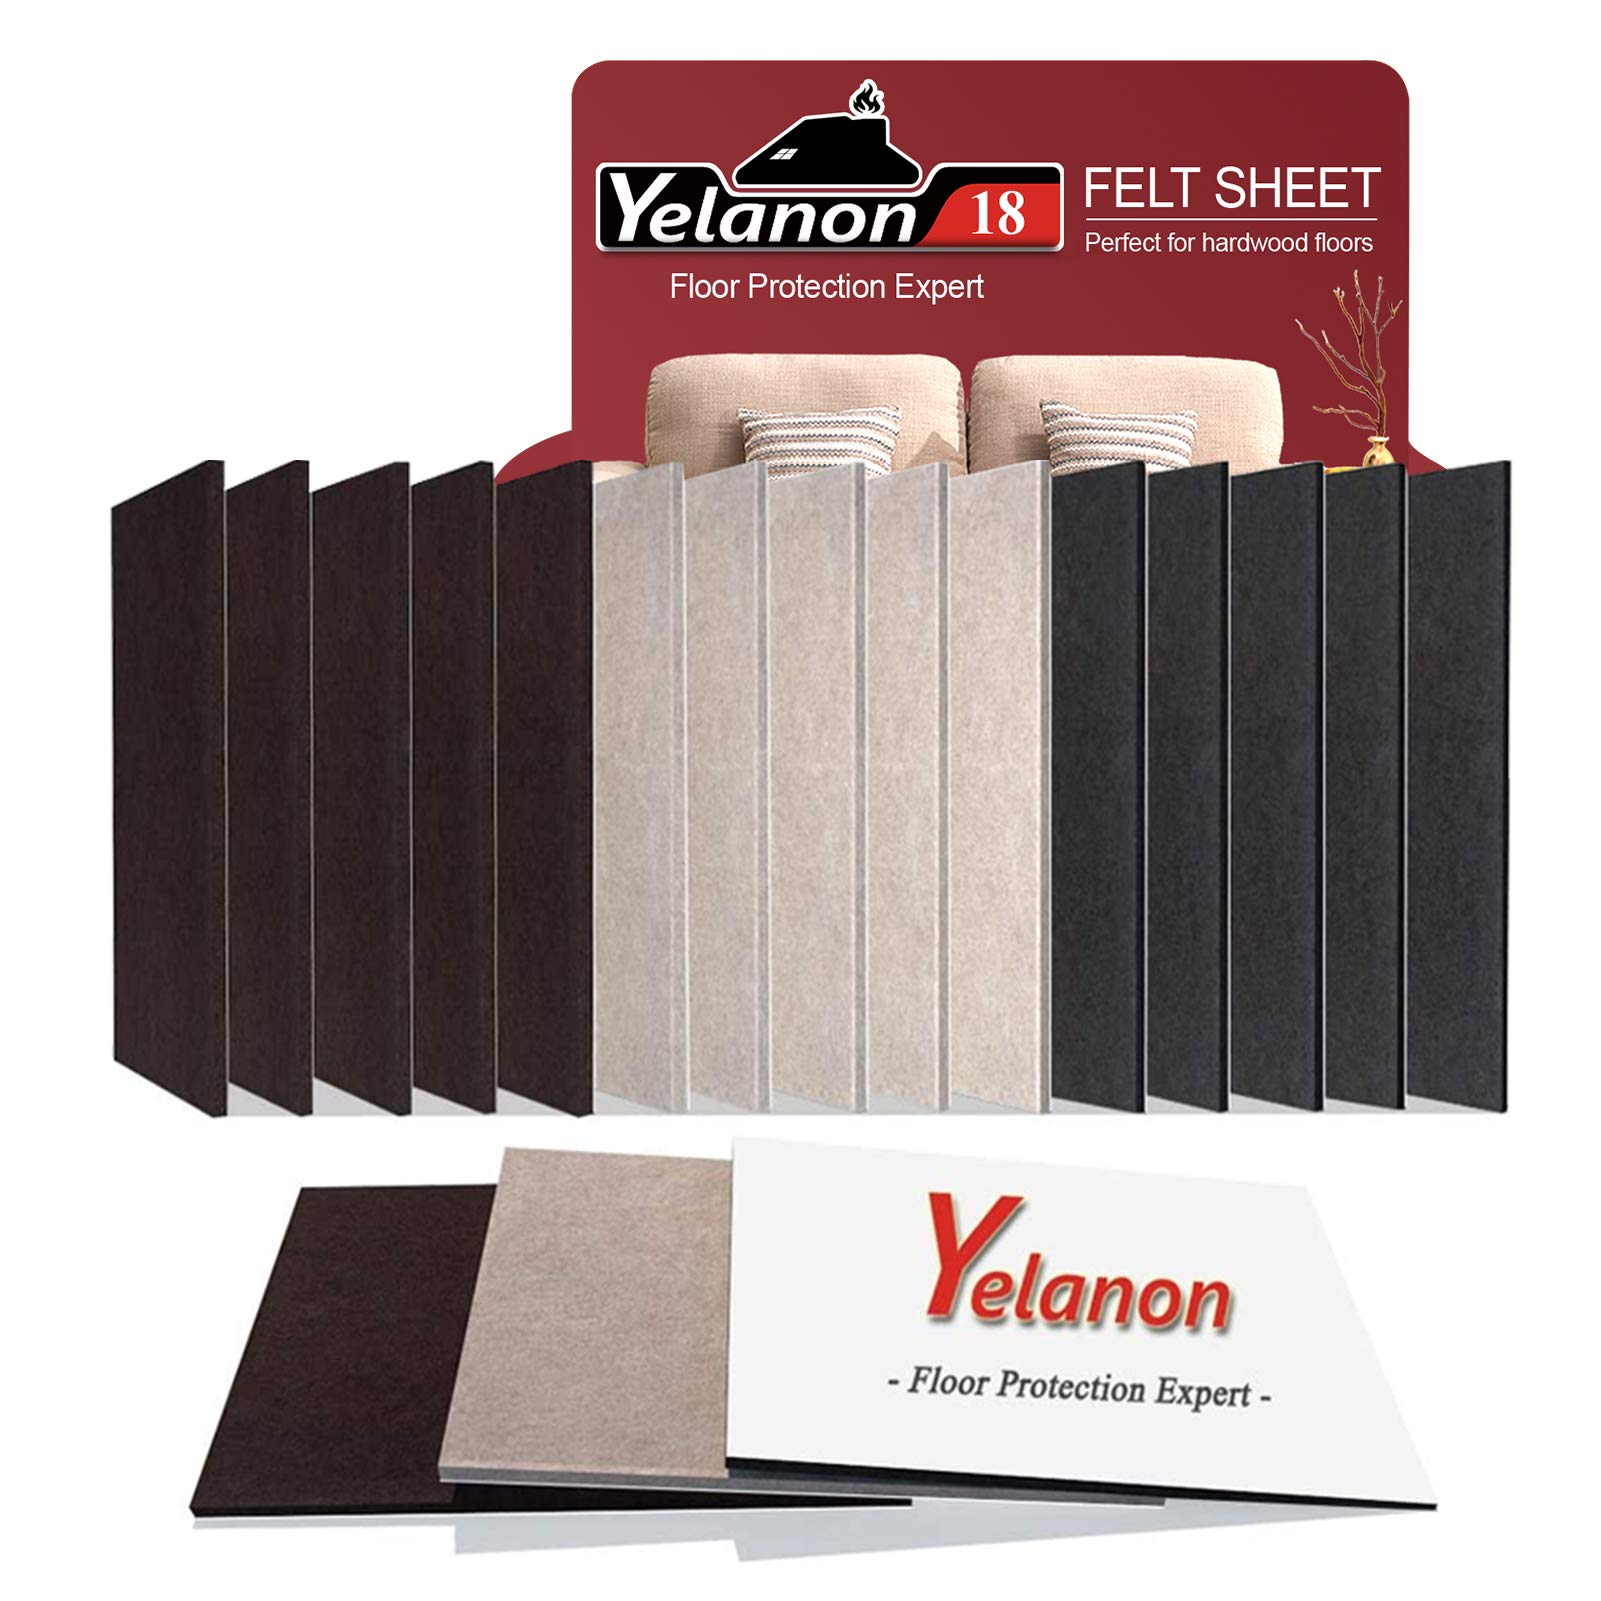 "Yelanon Felt Furniture Pads 18 Pieces 8"" x 6"" Furniture Pads Self Adhesive, Cuttable Felt Chair Pads, Anti Scratch Floor Protectors for Furniture Legs Furniture Couch Felt Feet Hardwood Floor"